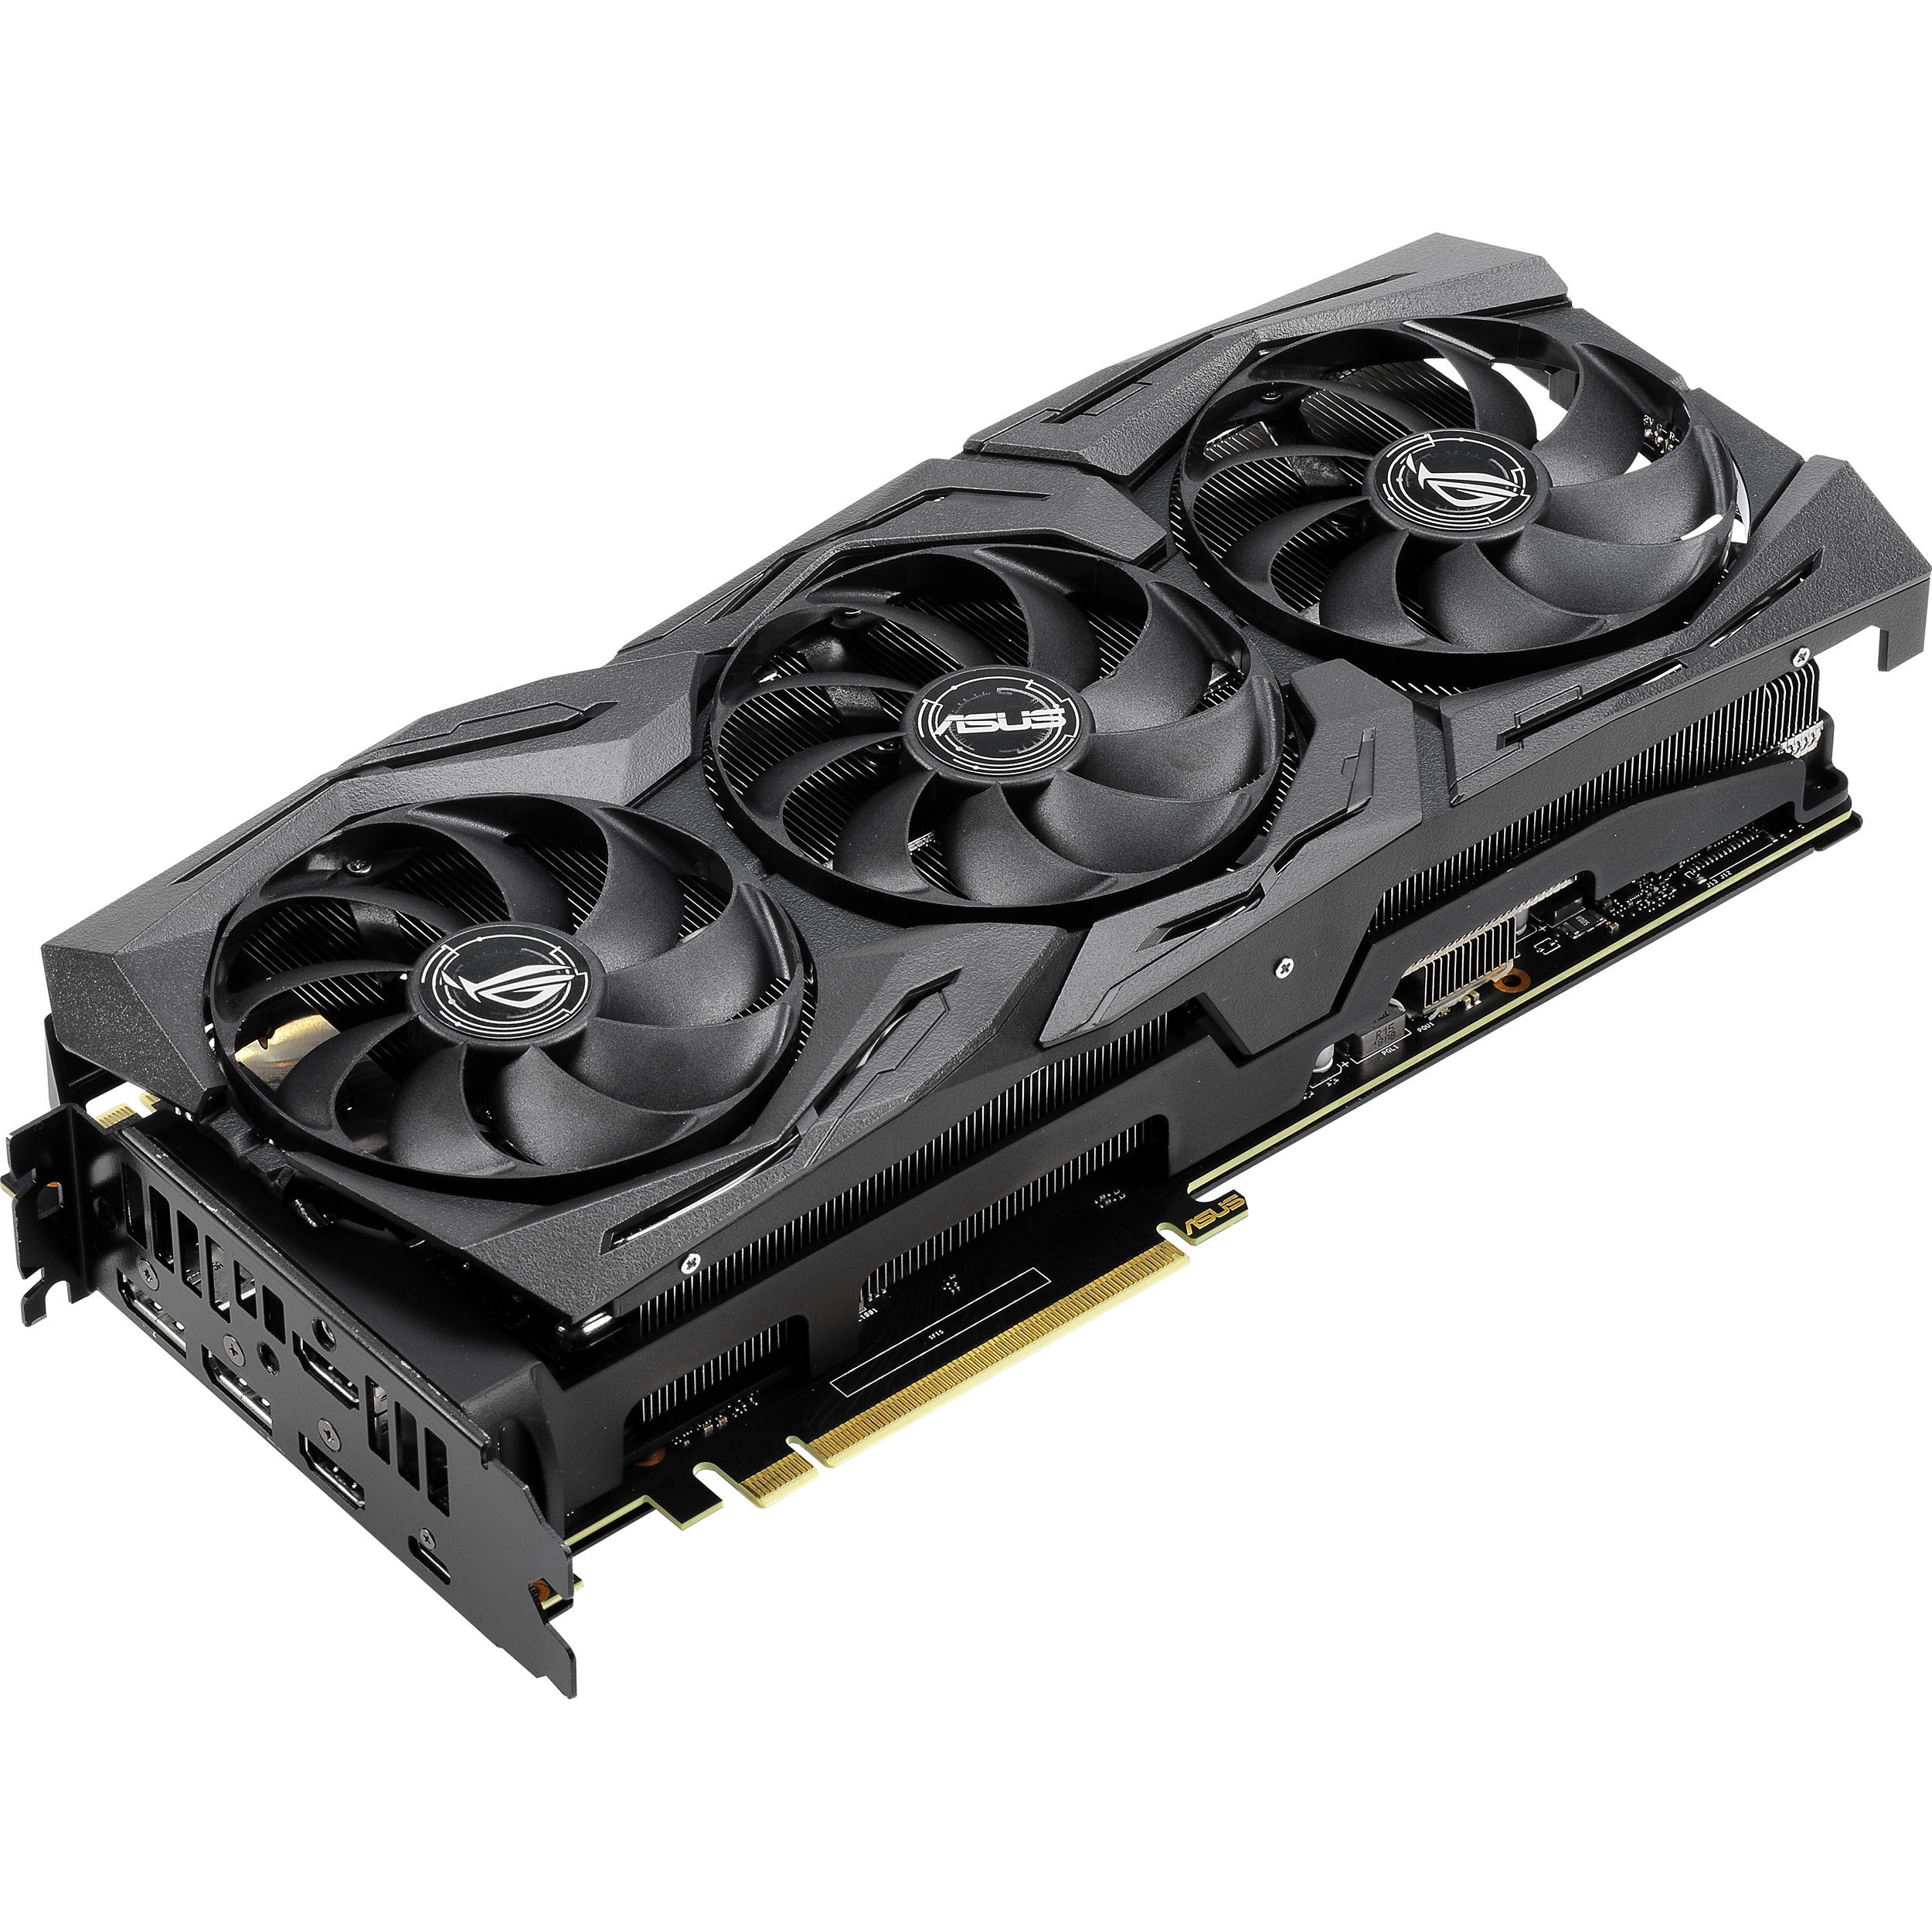 ASUS Republic of Gamers Strix GeForce RTX 2080 OC Graphics Card